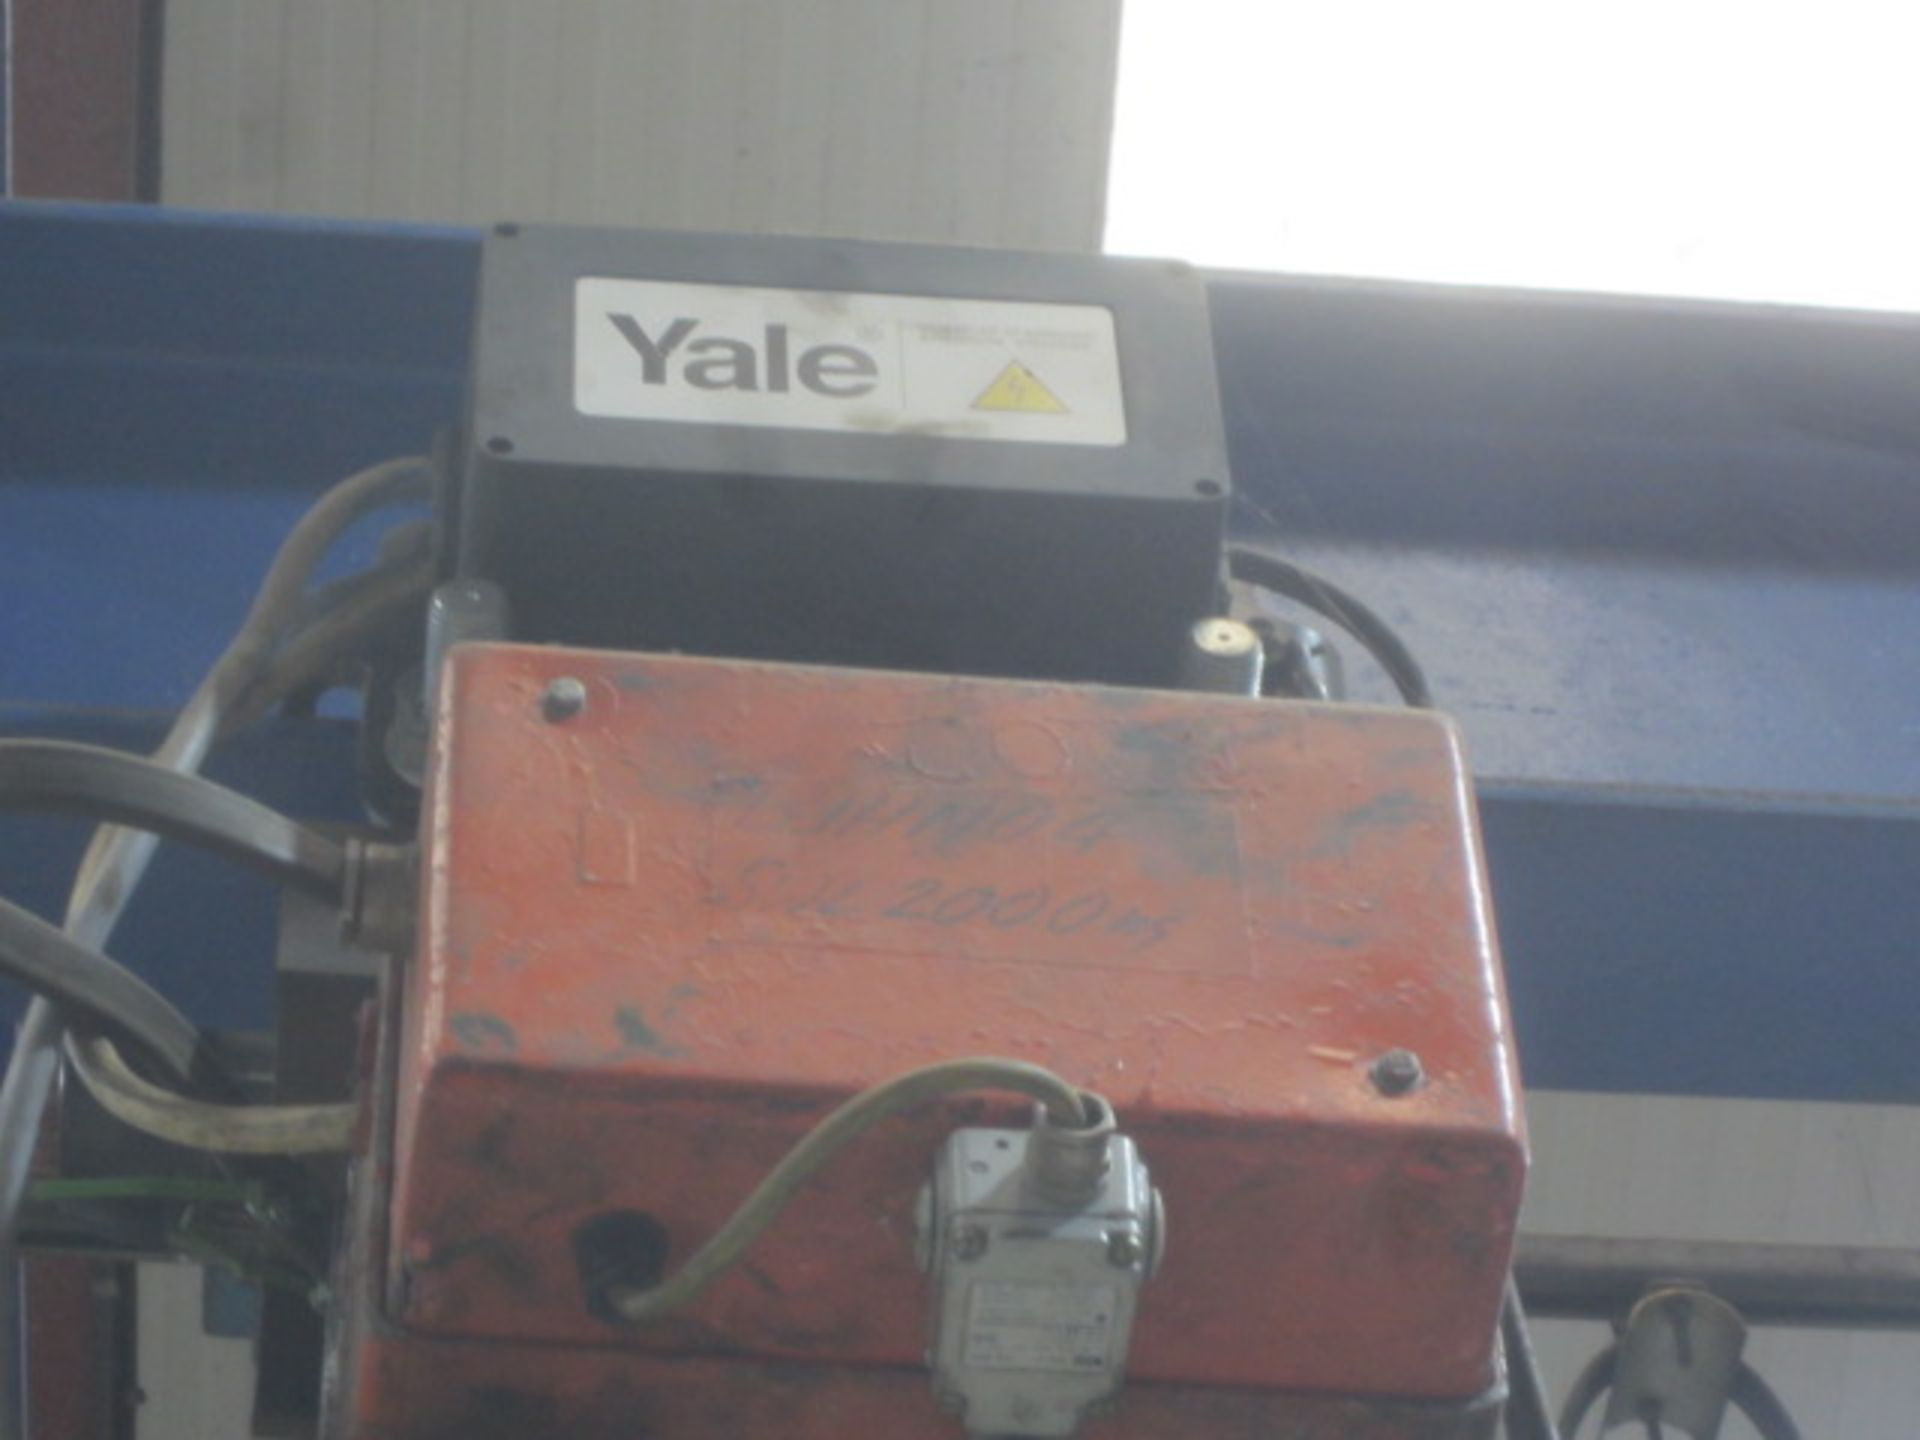 Yale 2000kg electric chain hoist, with power transverse. NB: This item has no record of Thorough - Image 4 of 4